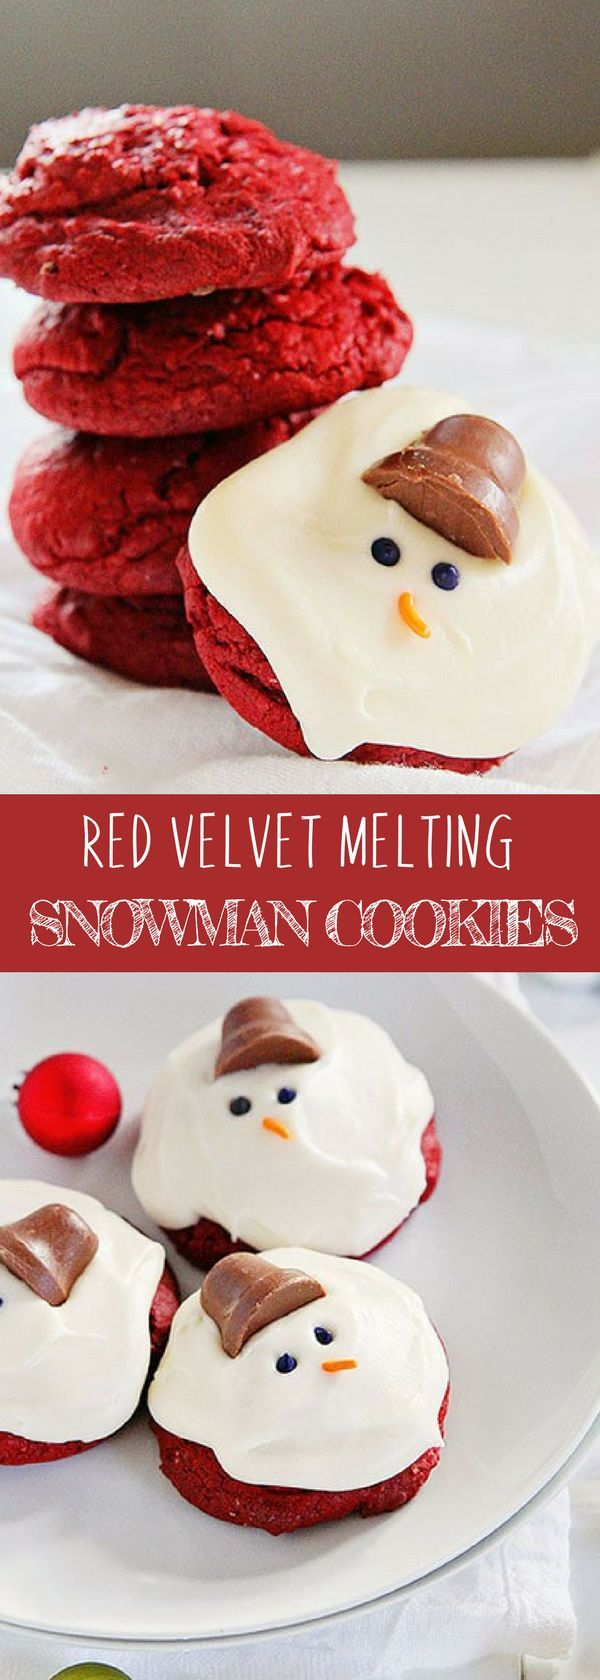 RED VELVET MELTING SNOWMAN COOKIES | It's an easy and yummy cookies perfect for winter added with Perfect Cream Cheese frosting. For more simple and easy dessert recipes to make, check us out at #iambaker. #cookies #foodlover #desserts #yummydesserts #recipeoftheday